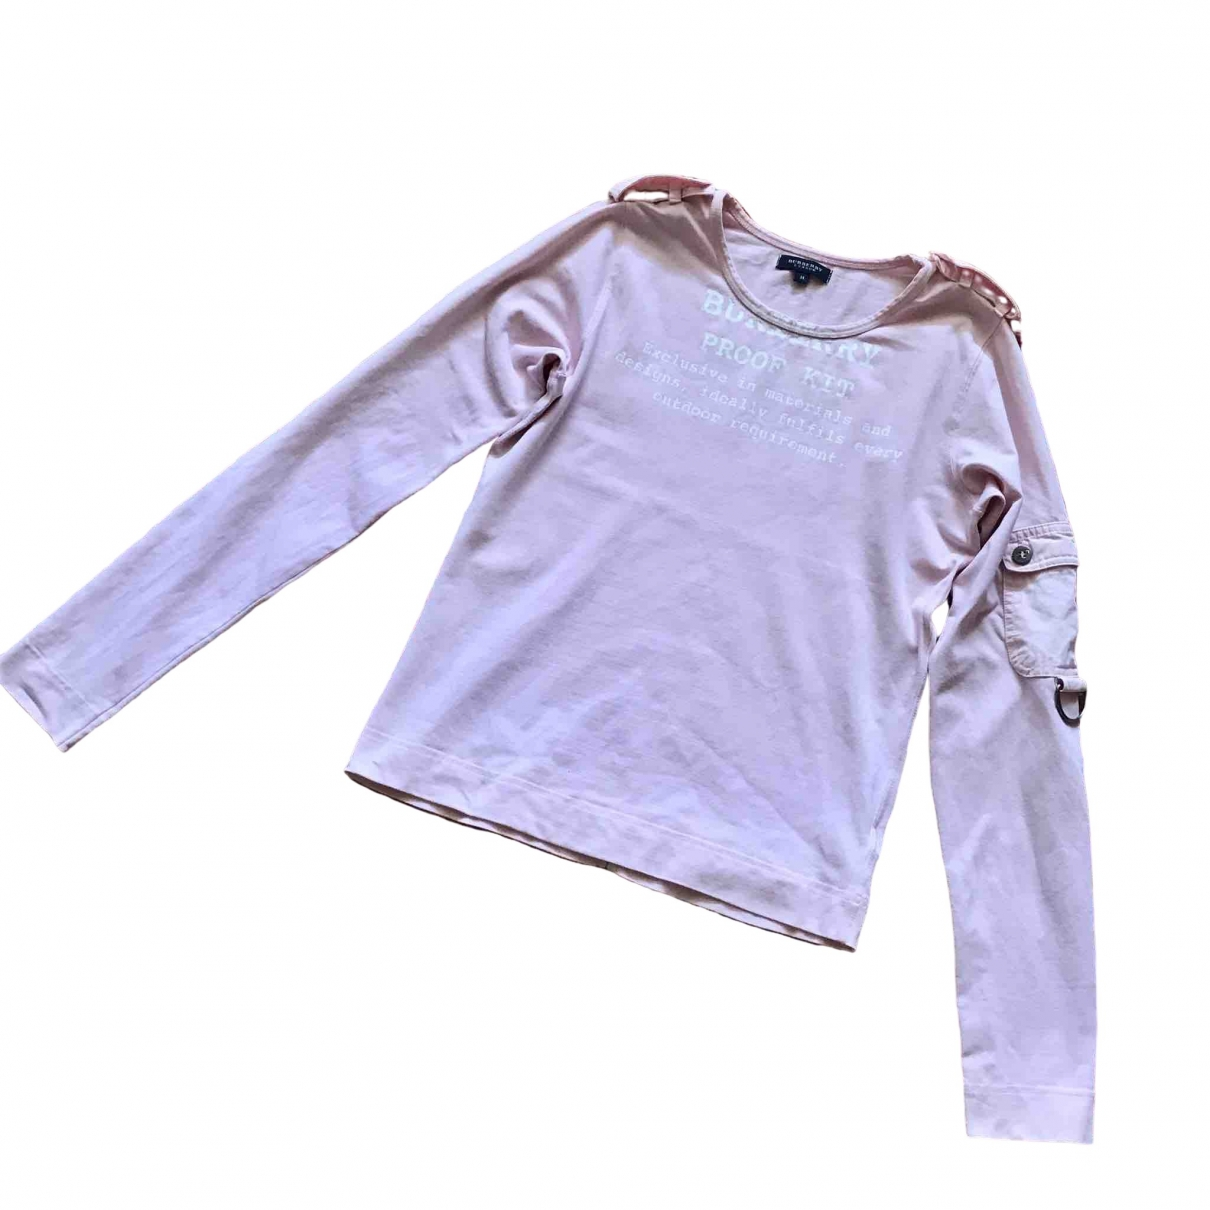 Burberry \N Pink Cotton  top for Women M International